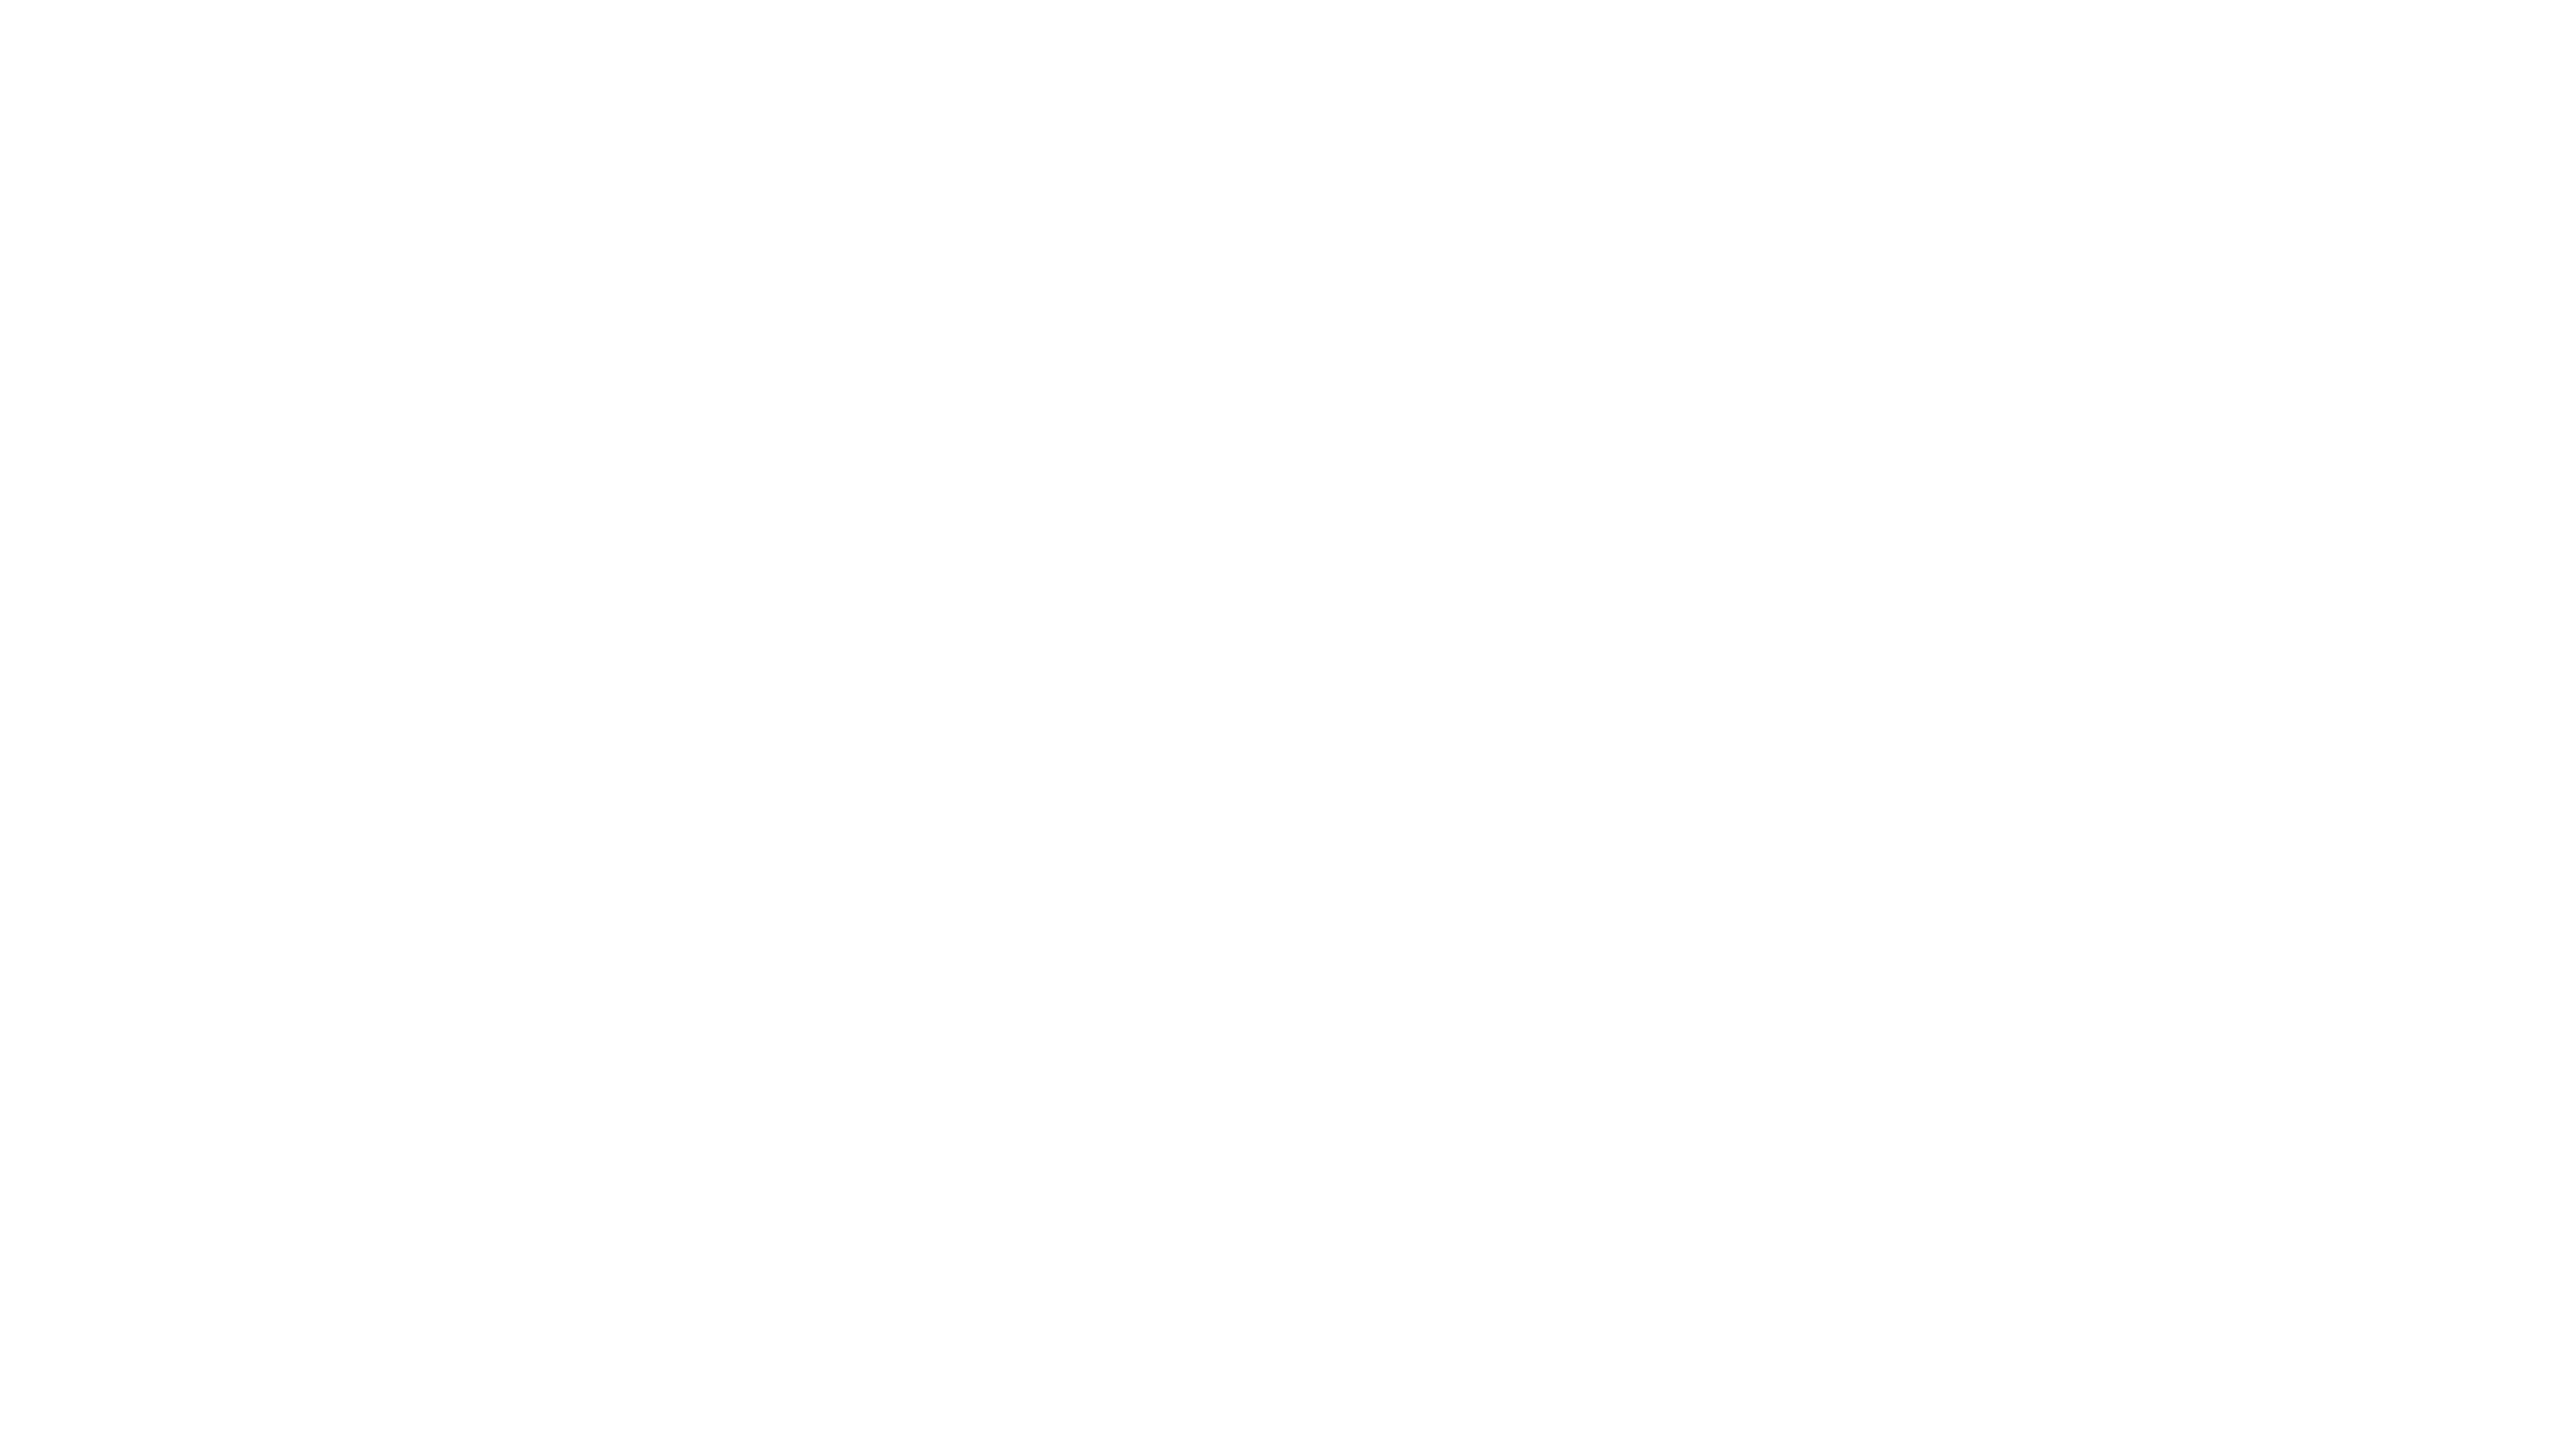 Chris Lucibello Real Estate - Global Reach, Local Knowledge, Proven Results